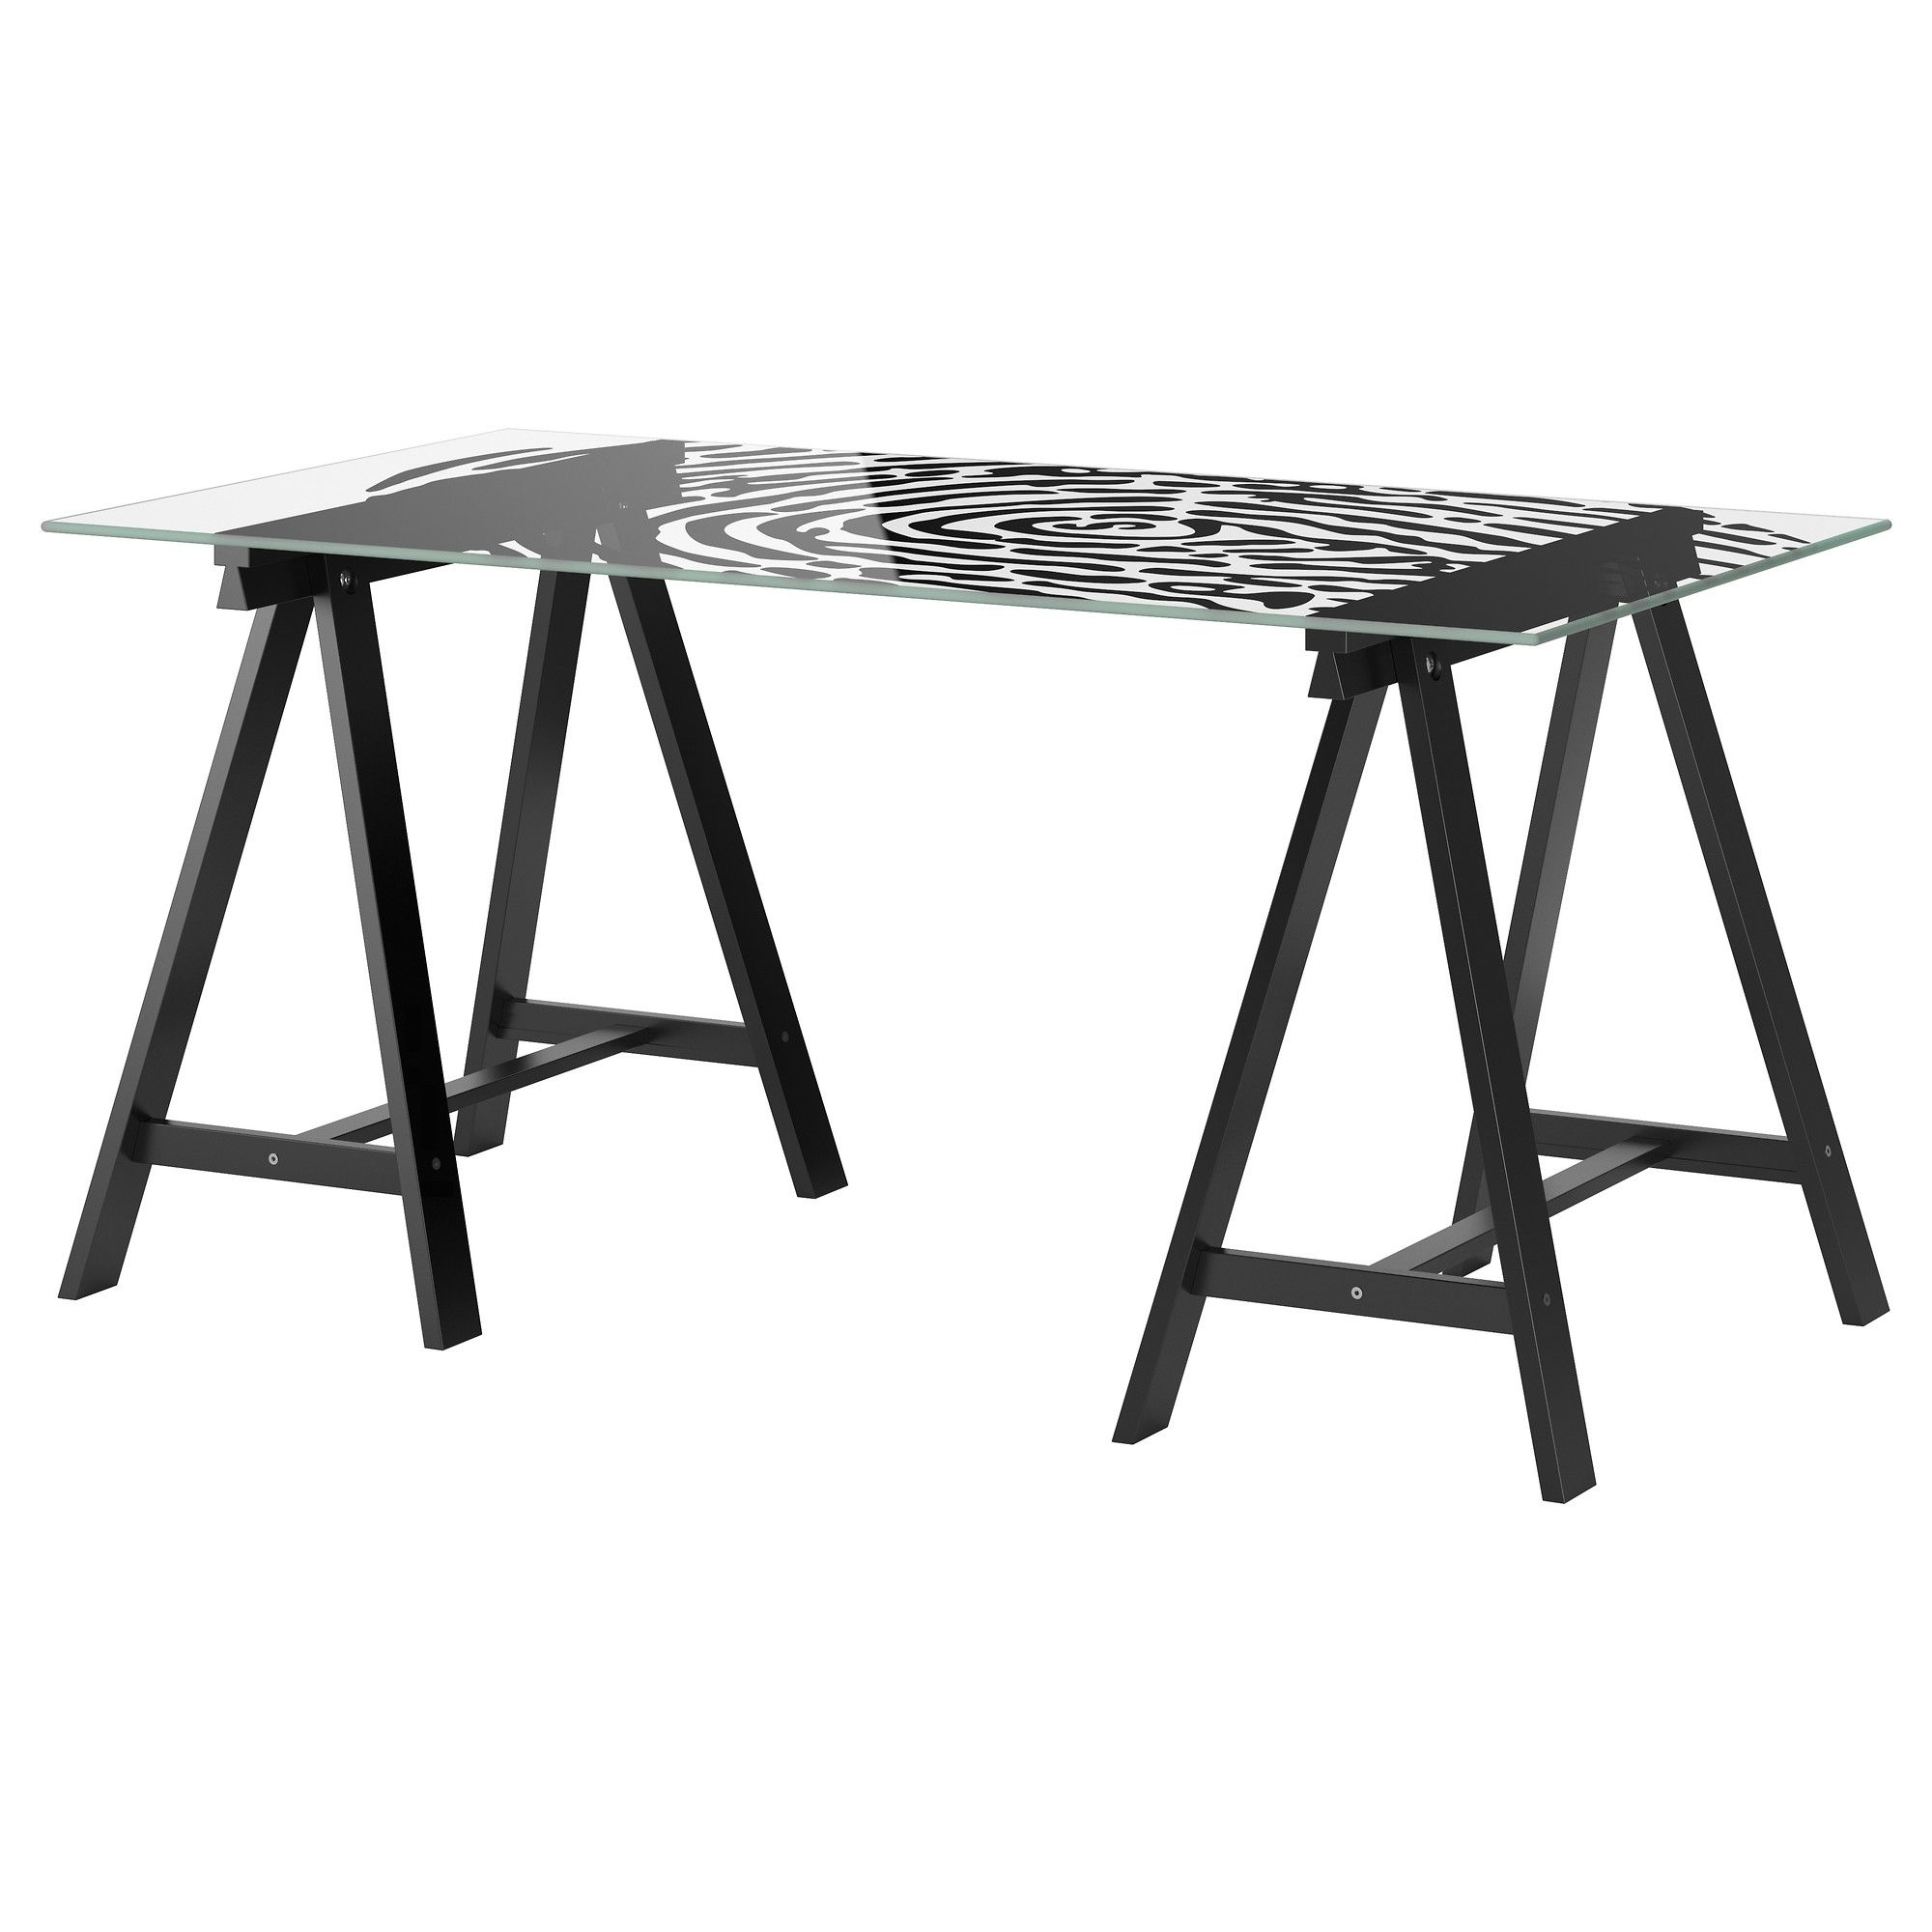 glass desk table tops. For The Basement, Lego Table? GLASHOLM/ODDVALD Table - IKEA Glass Desk Tops P